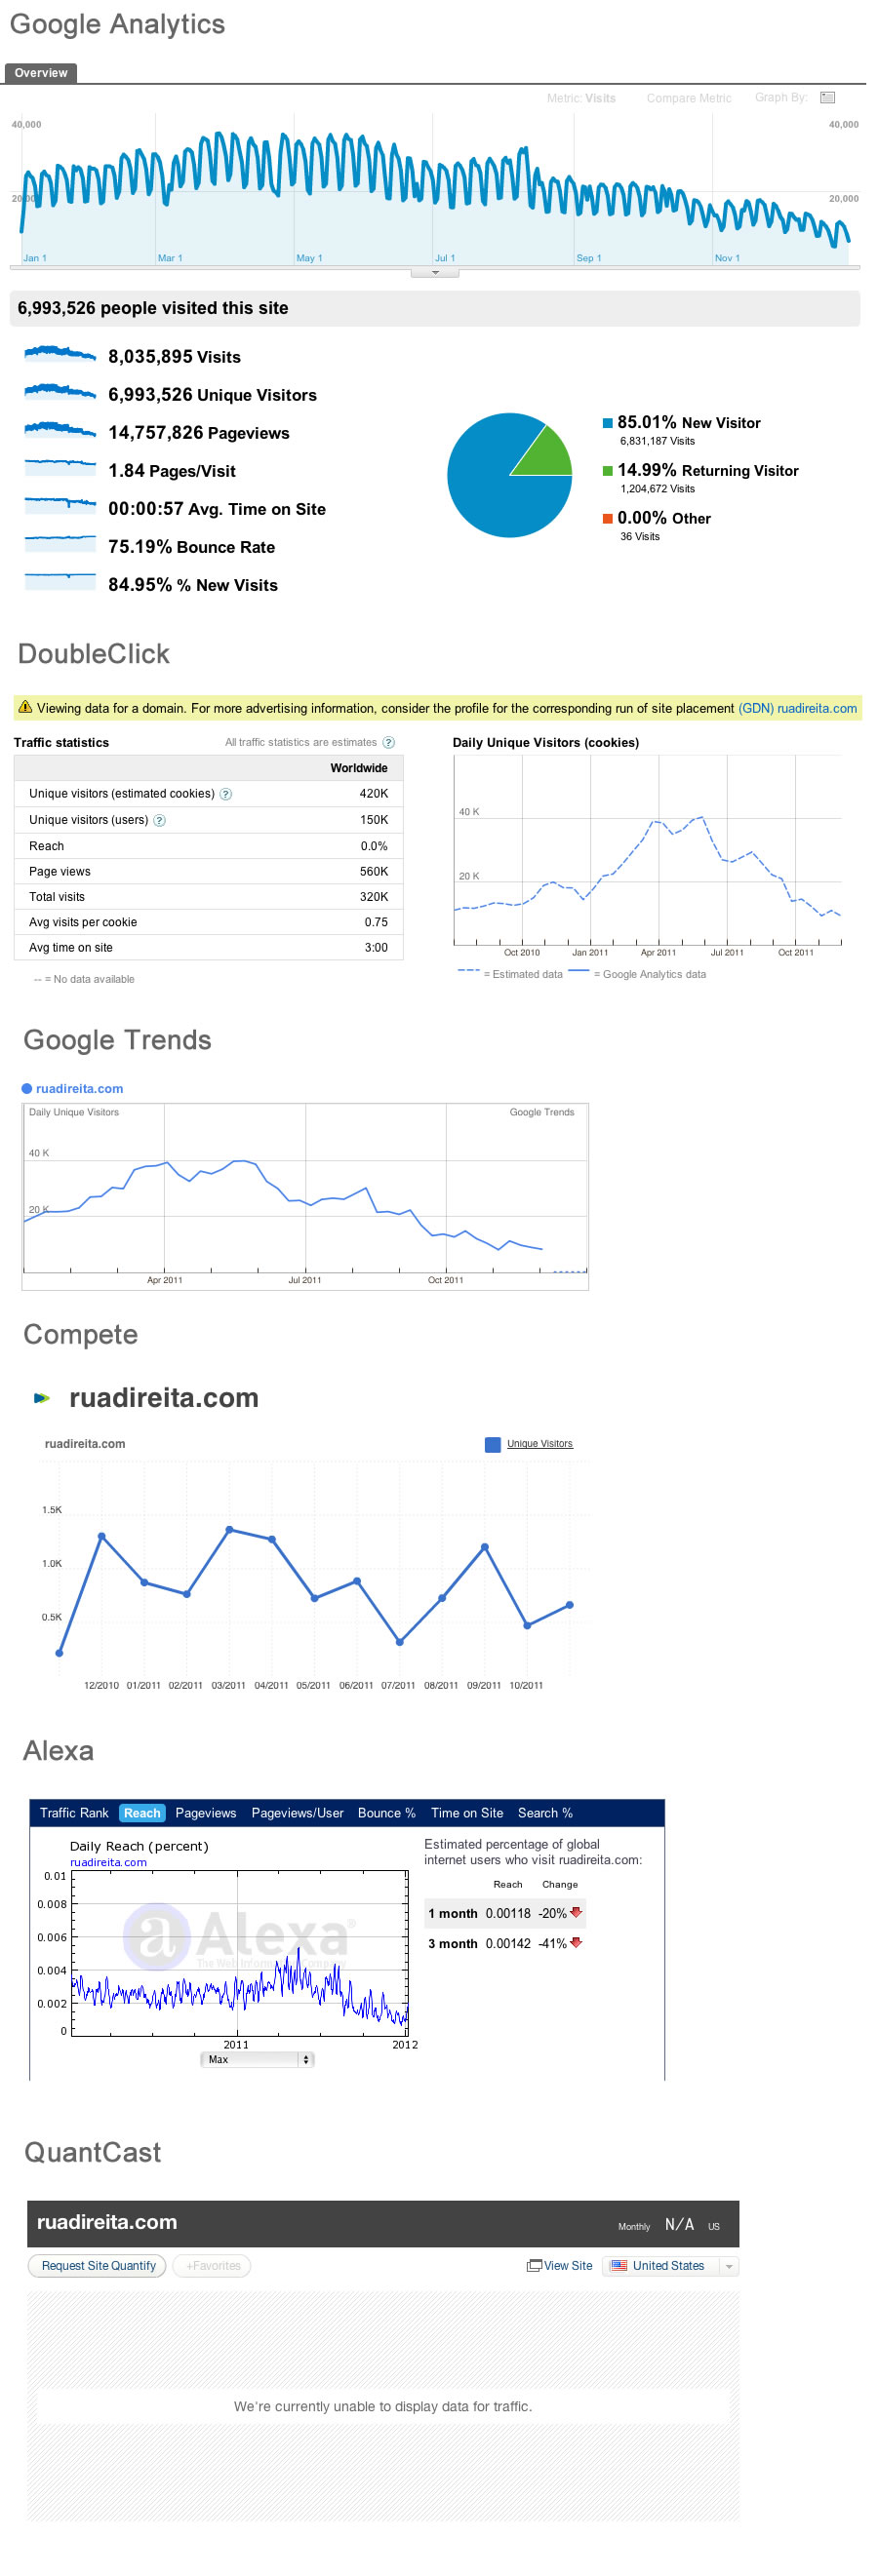 comparao google analytics, Double click, Google Trends, Compete, Alexa e Quantcast